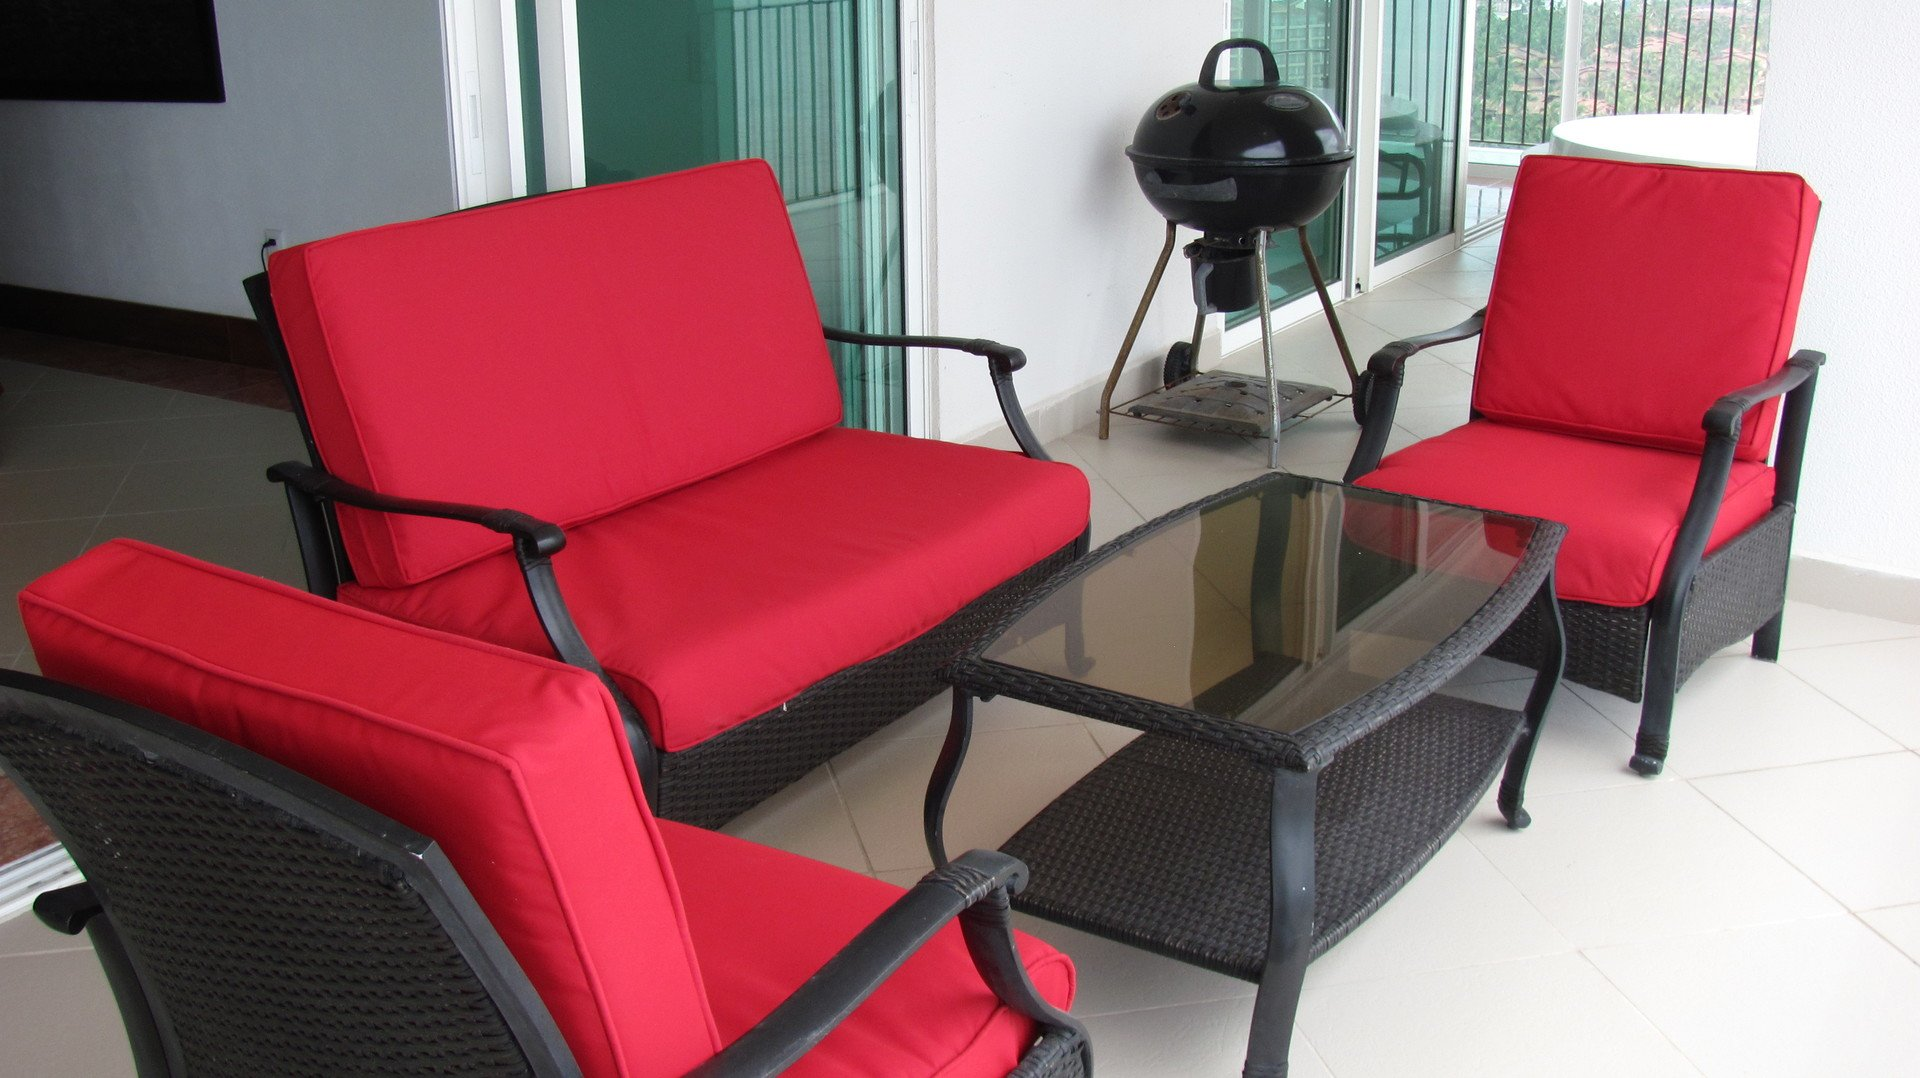 4 bedroom vacation condo patio furniture in Grand Venetian Puerto Vallarta